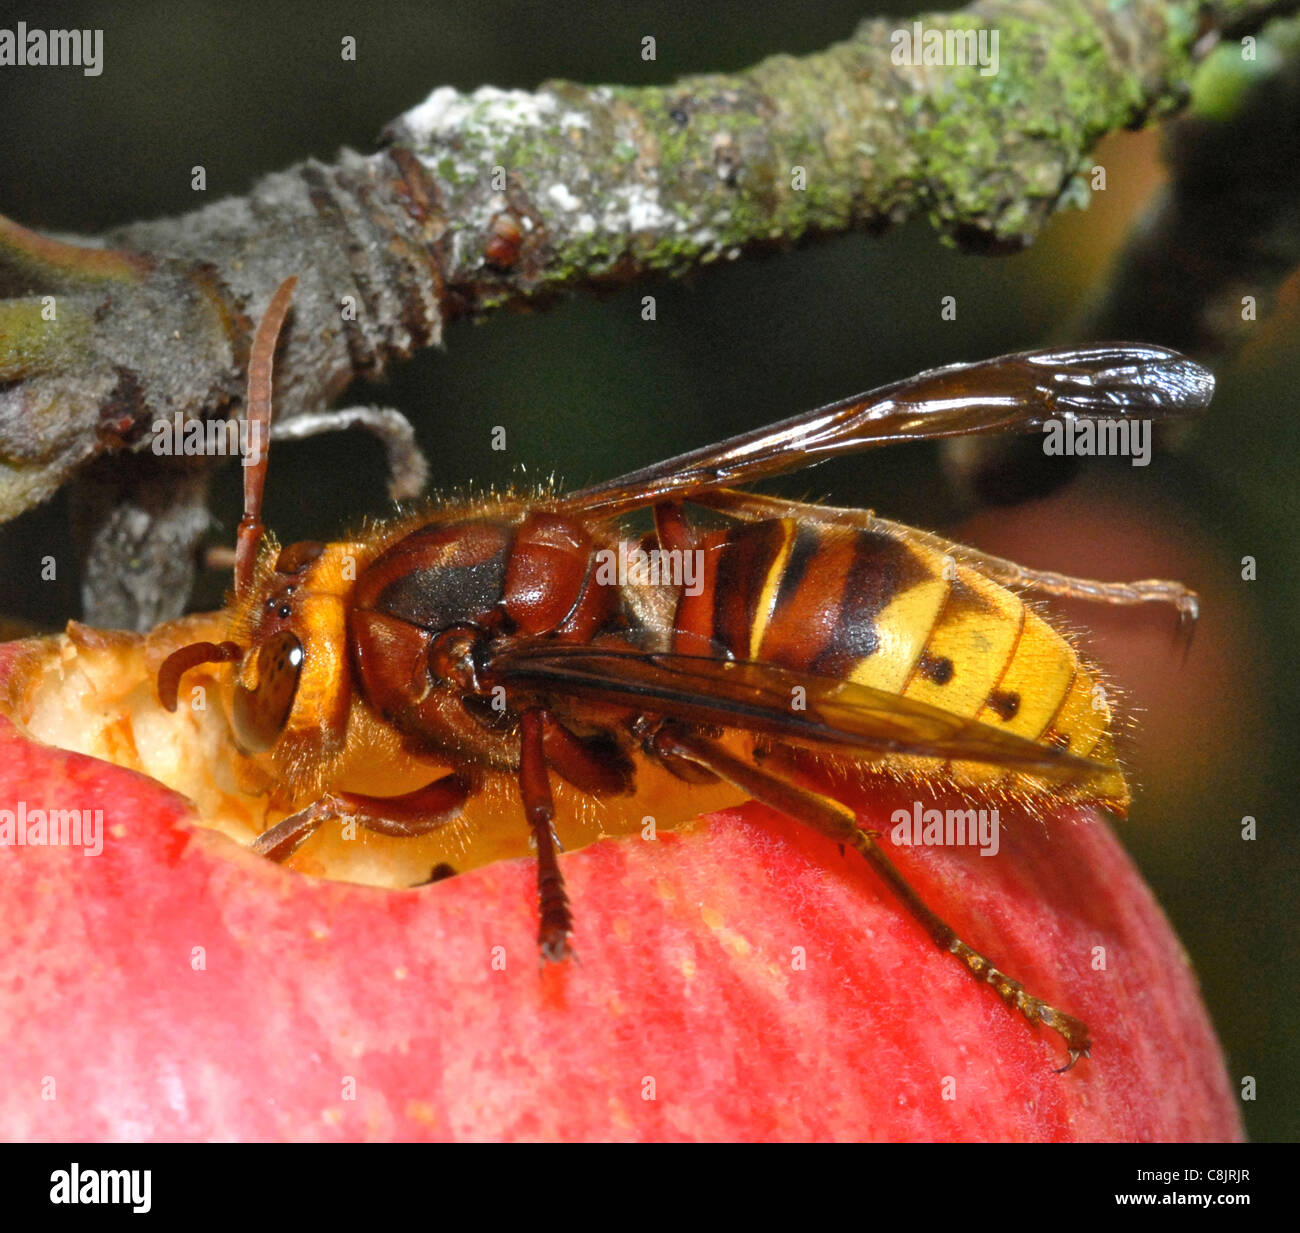 HORNET (Vespa crabro) Increasingly common in the UK the hornet has a well deserved reputaion for its sting and bad - Stock Image